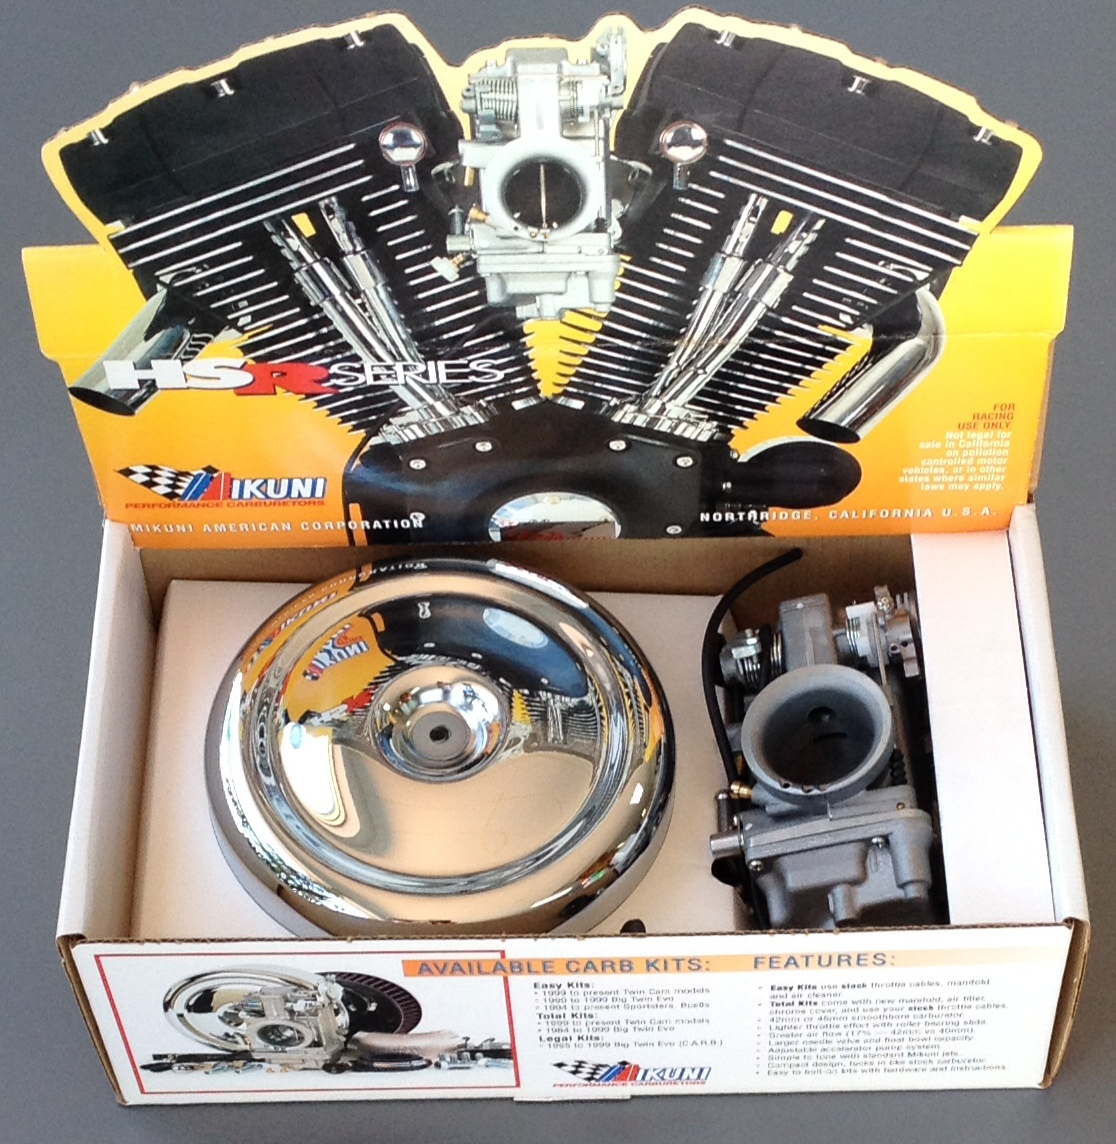 Image result for mikuni hsr 45 kit harley